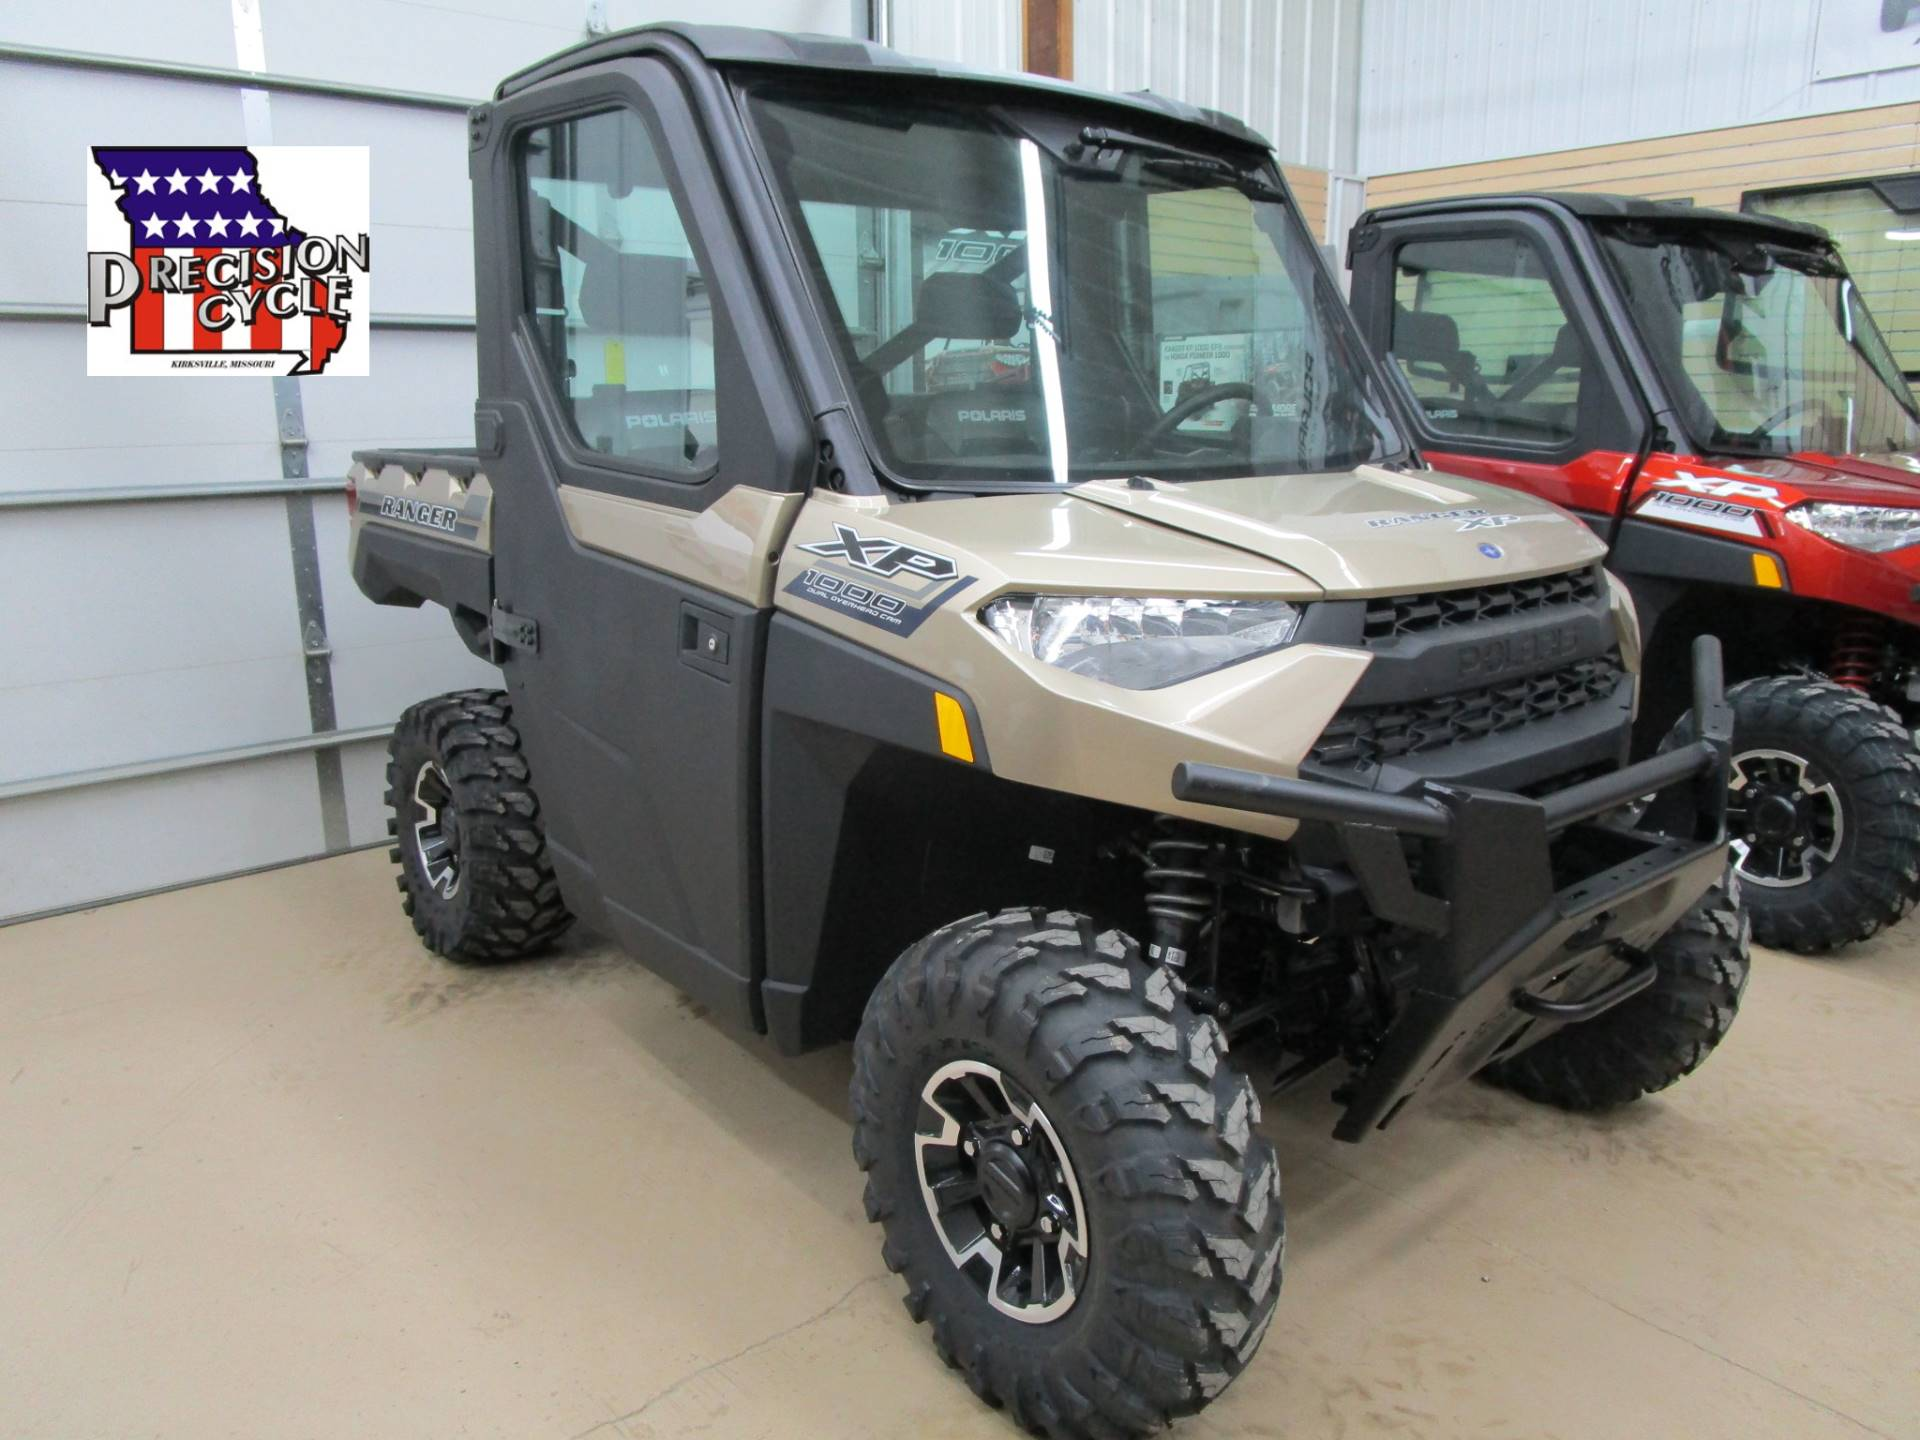 2020 Polaris Ranger XP 1000 Northstar Ultimate in Kirksville, Missouri - Photo 1